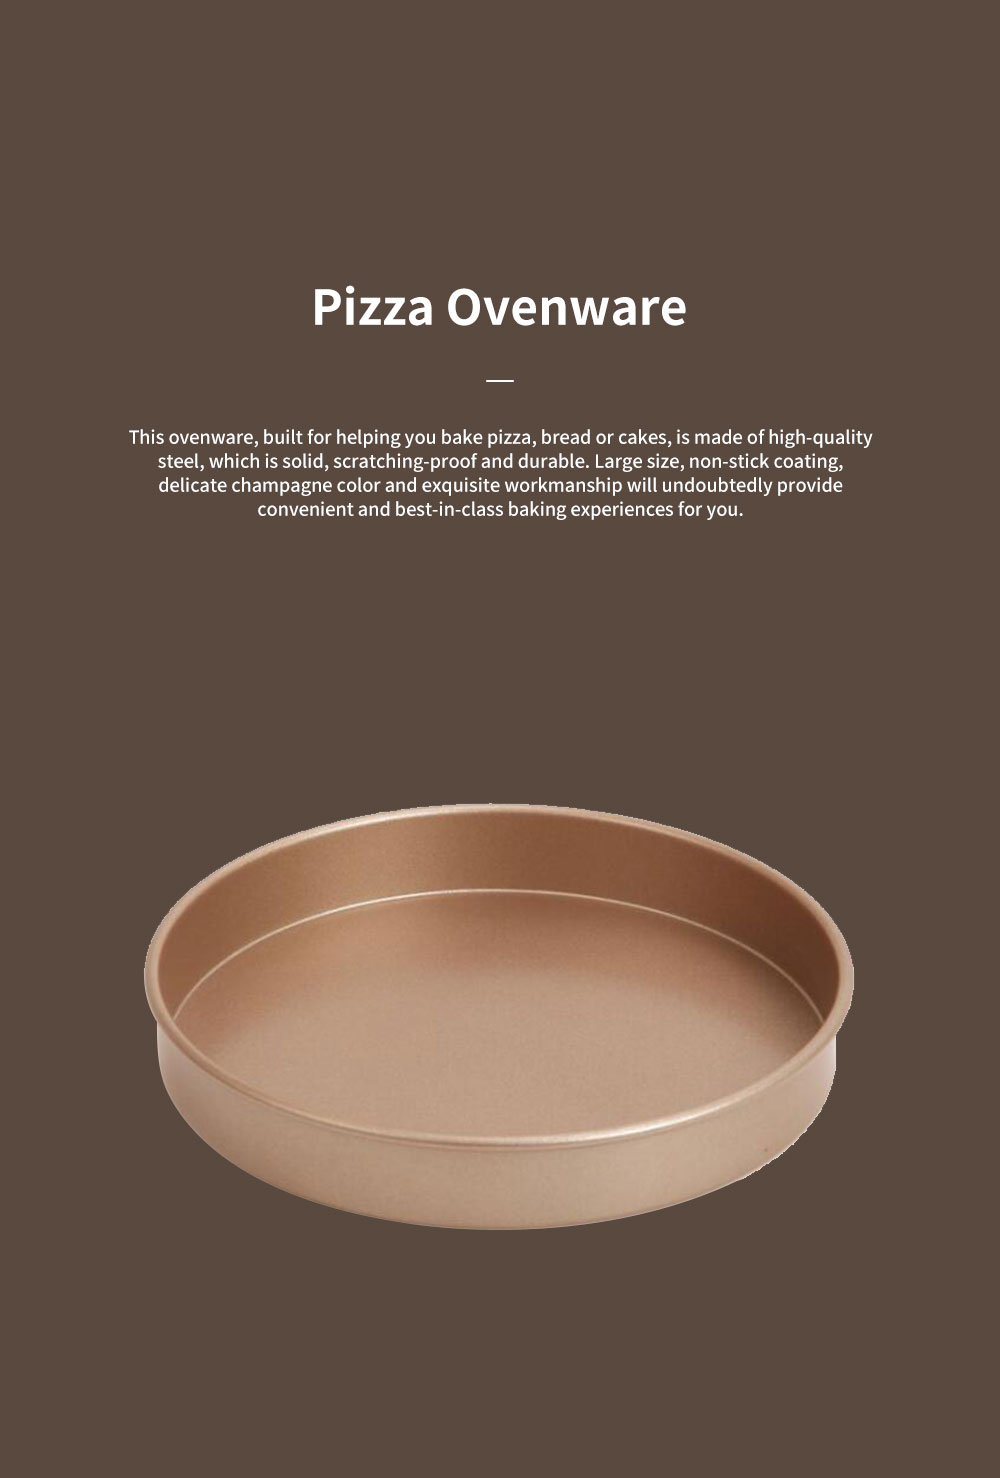 Chefmade Delicate Champagne 6-inch Non-stick Pizza Bread Baking Pan Cake Mould Ovenware Steel Bakeware Kitchen Assistant Tool 0